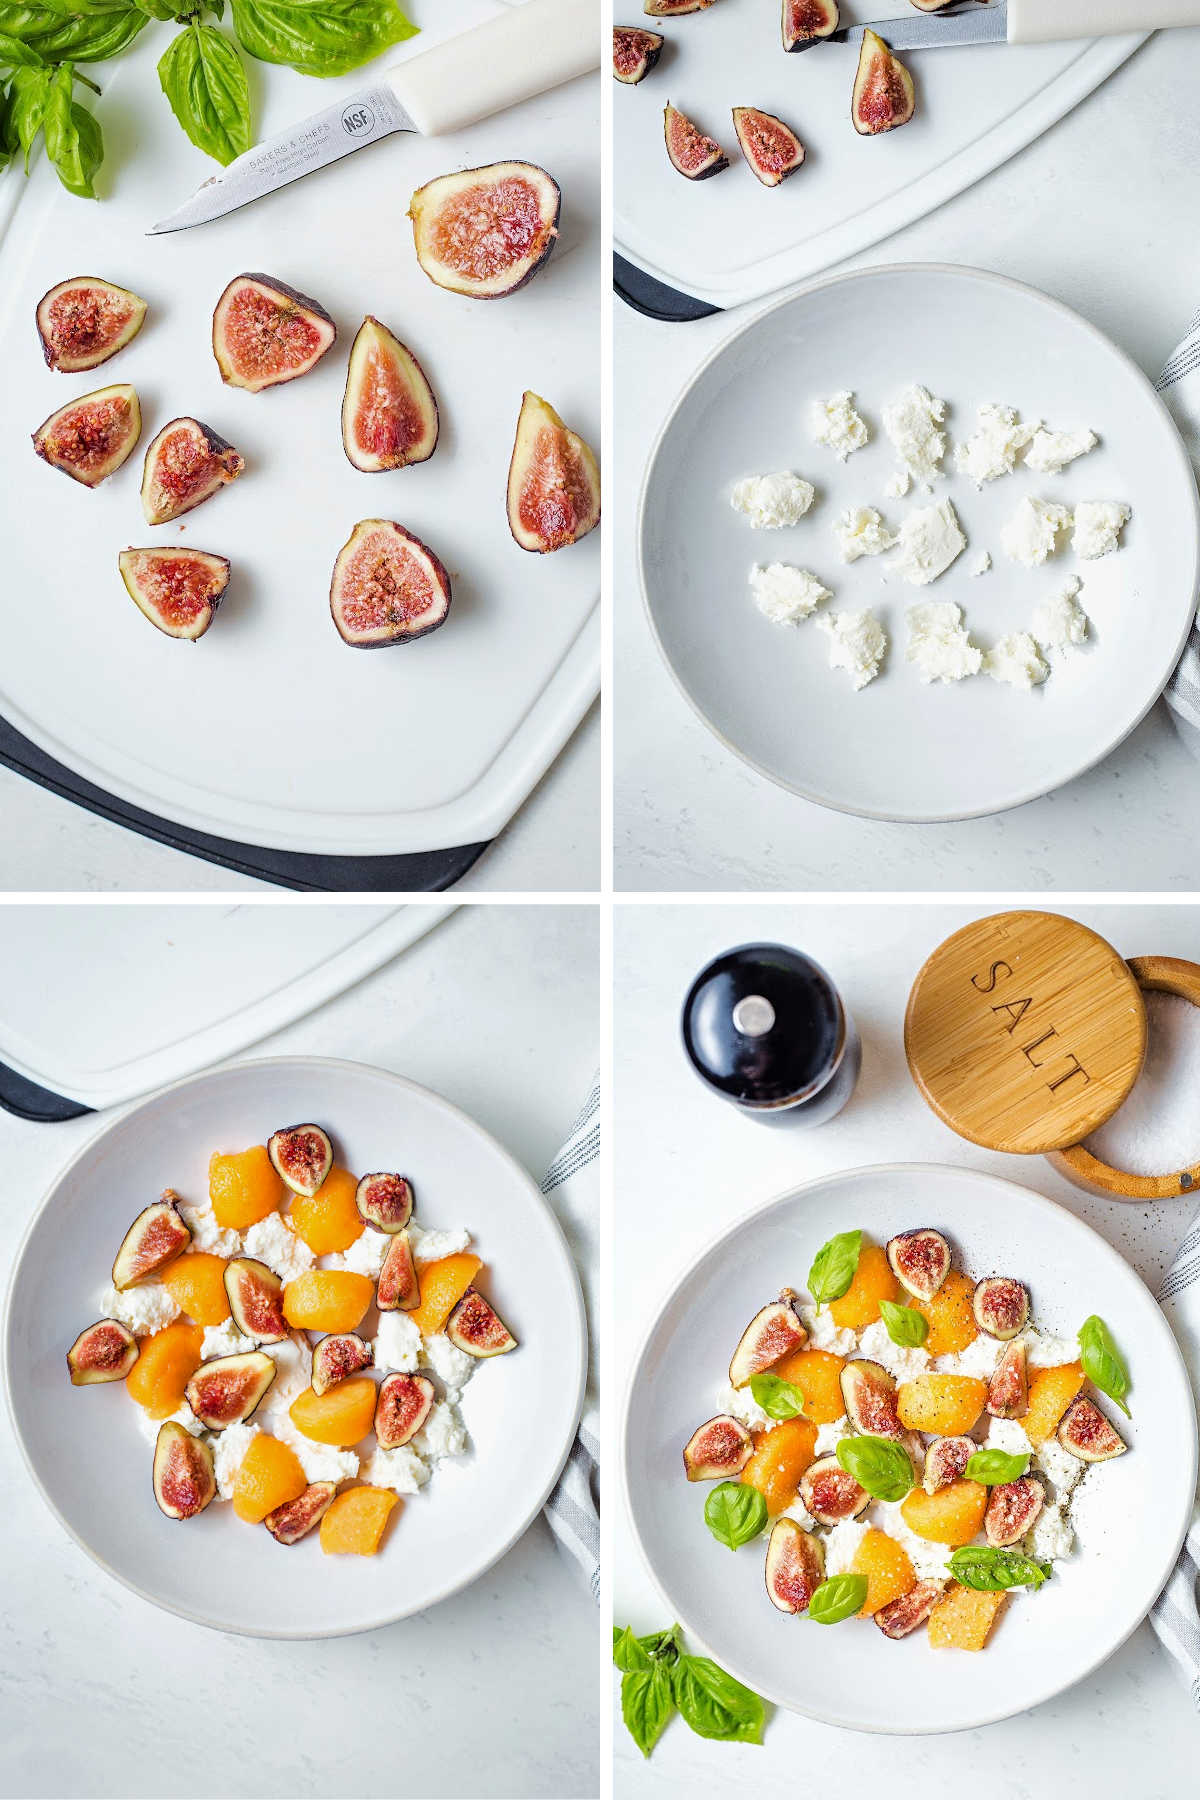 process steps for preparing fig salad: cut figs into quarters; crumble fresh mozzarella into a bowl; add cantaloupe and figs; add basil leaves, salt, and pepper.